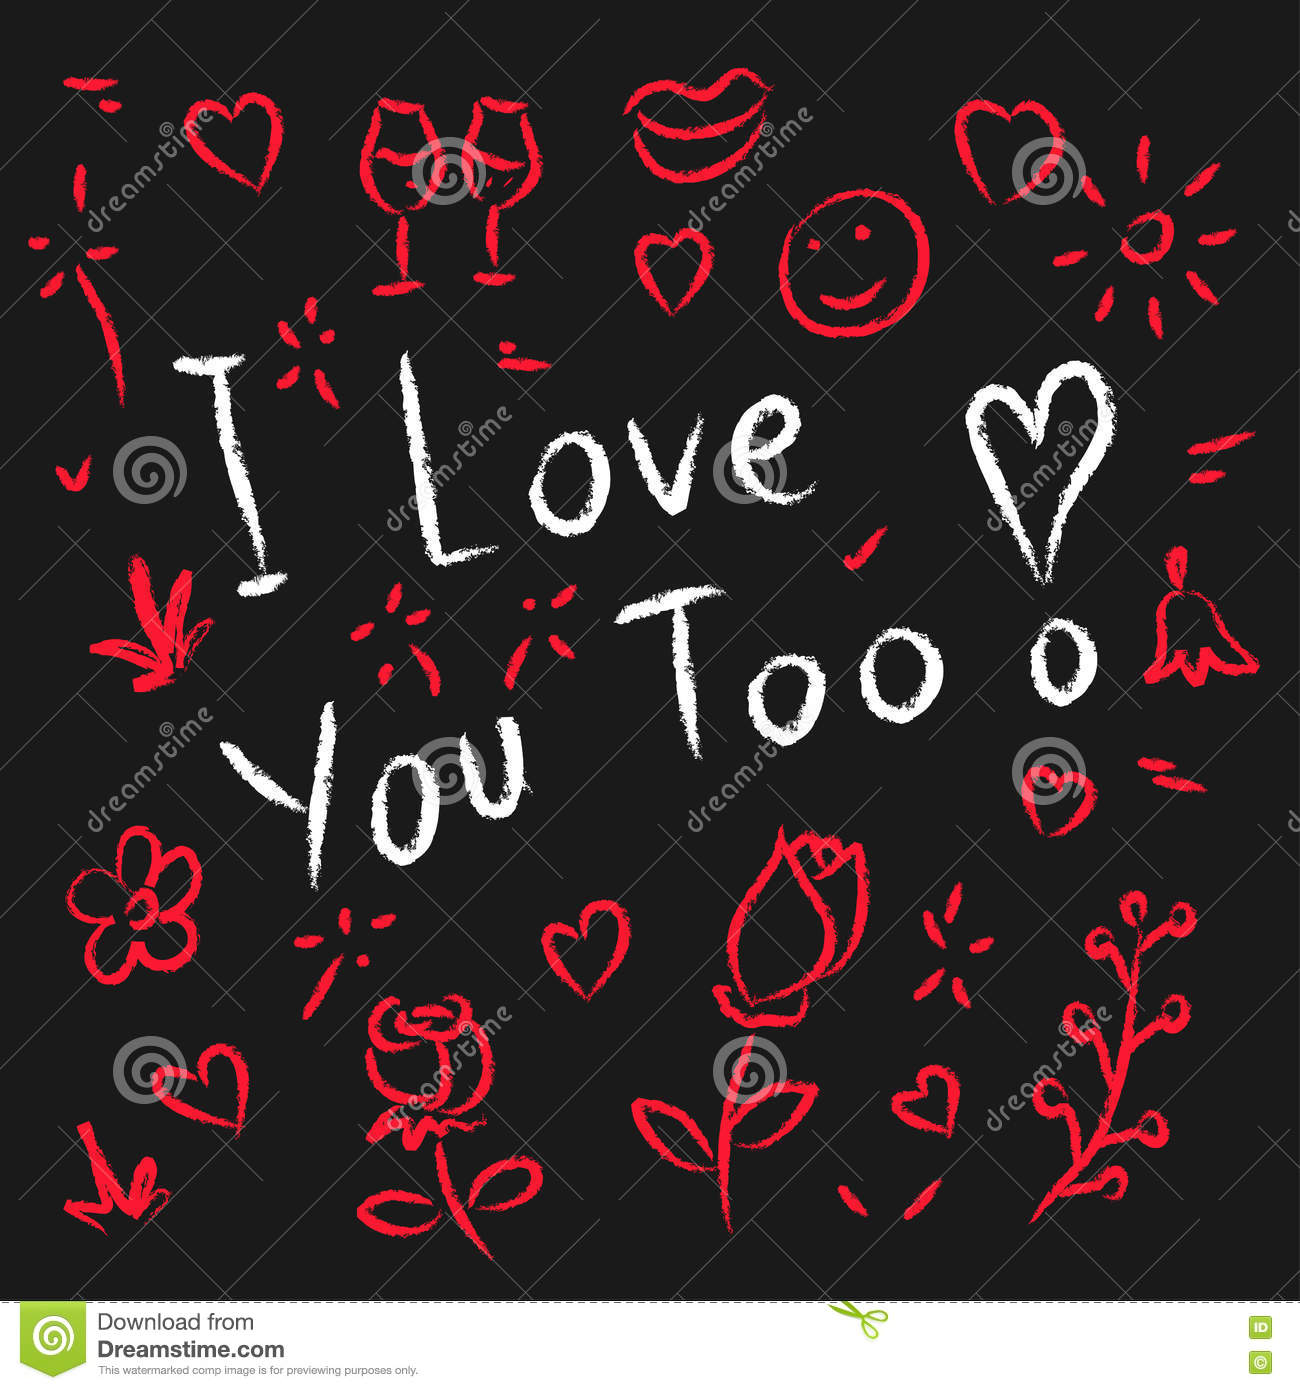 Love You Too Hd Wallpaper : I Love You Too Photo Hd Wallpaper sportstle